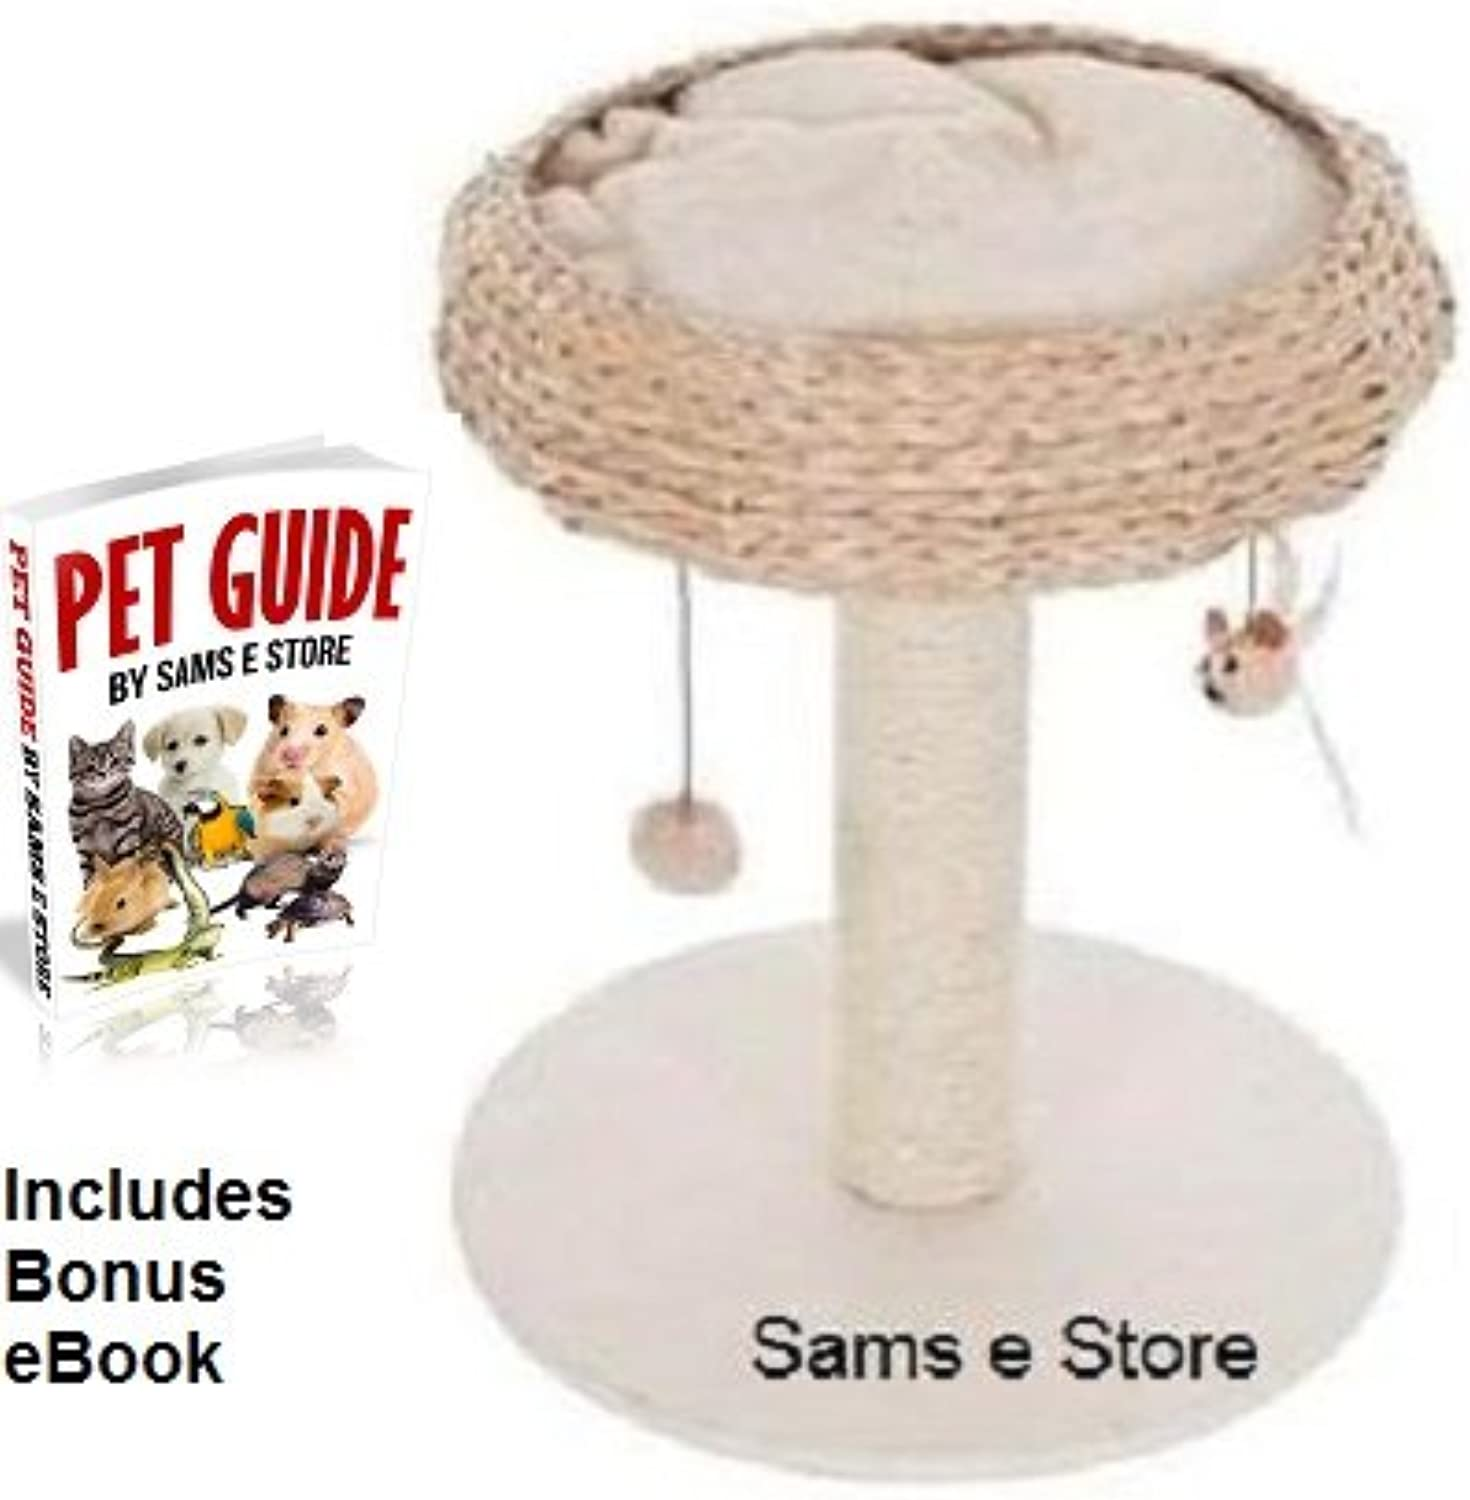 Cat Basket Tree Raised Cushion for Cats and Kittens on Solid wood sturdy base With Cat Sharpening Post and Hanging Toys by Sams e Store